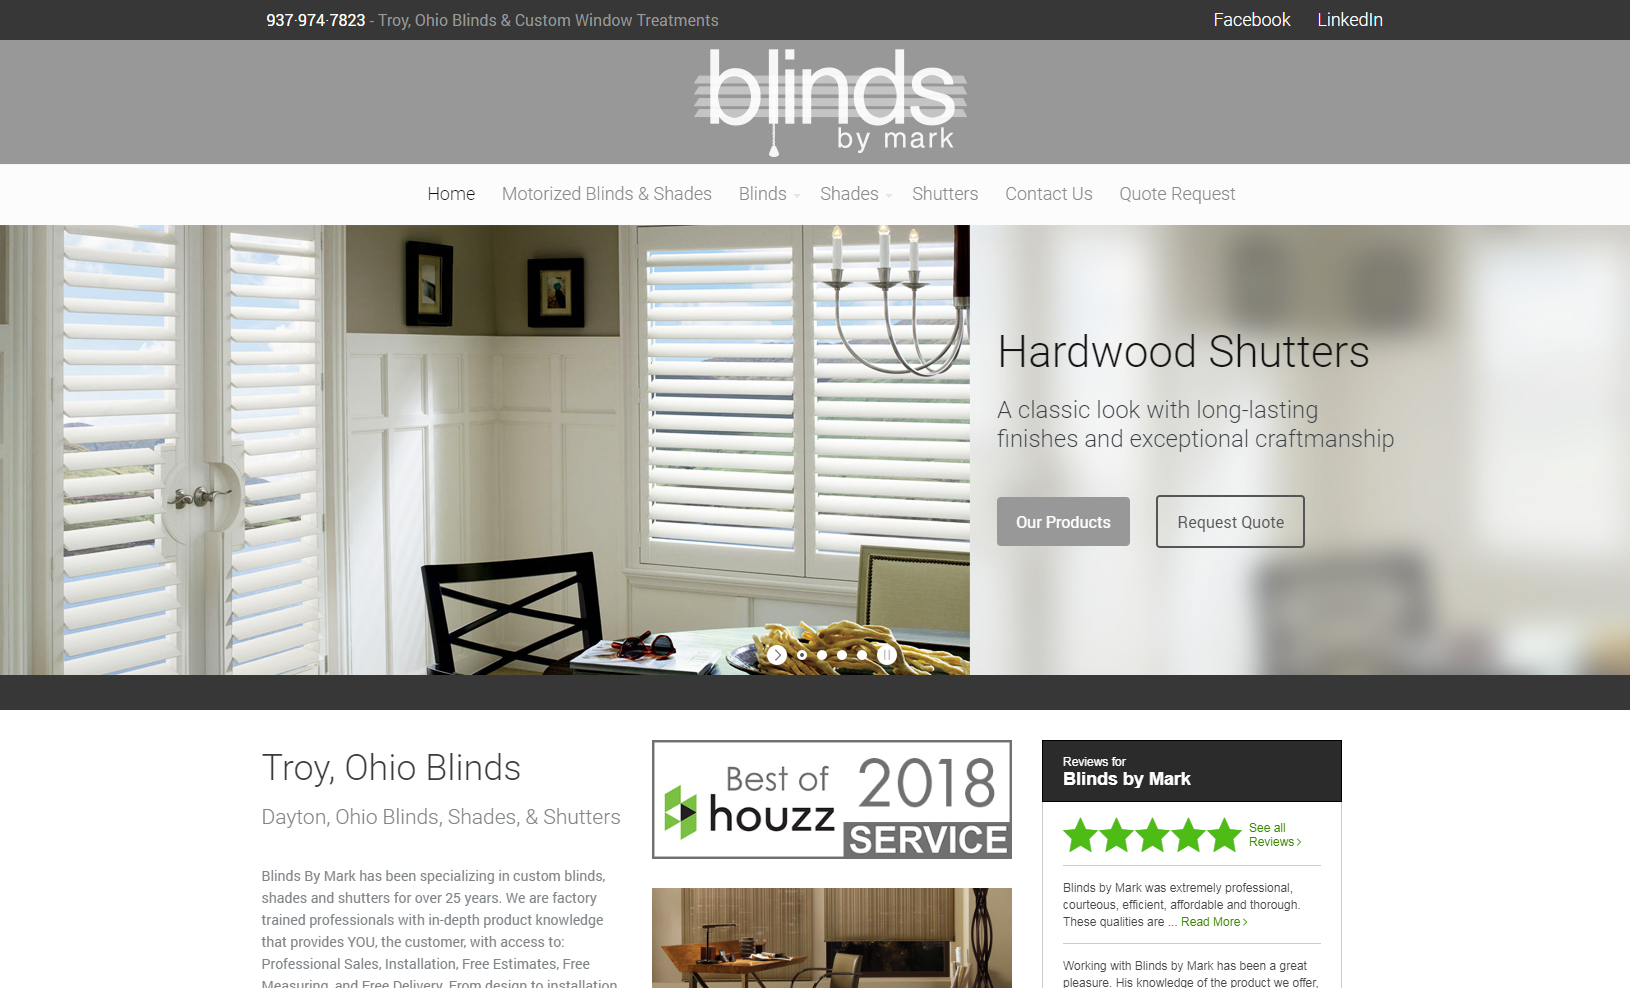 Blinds By Mark